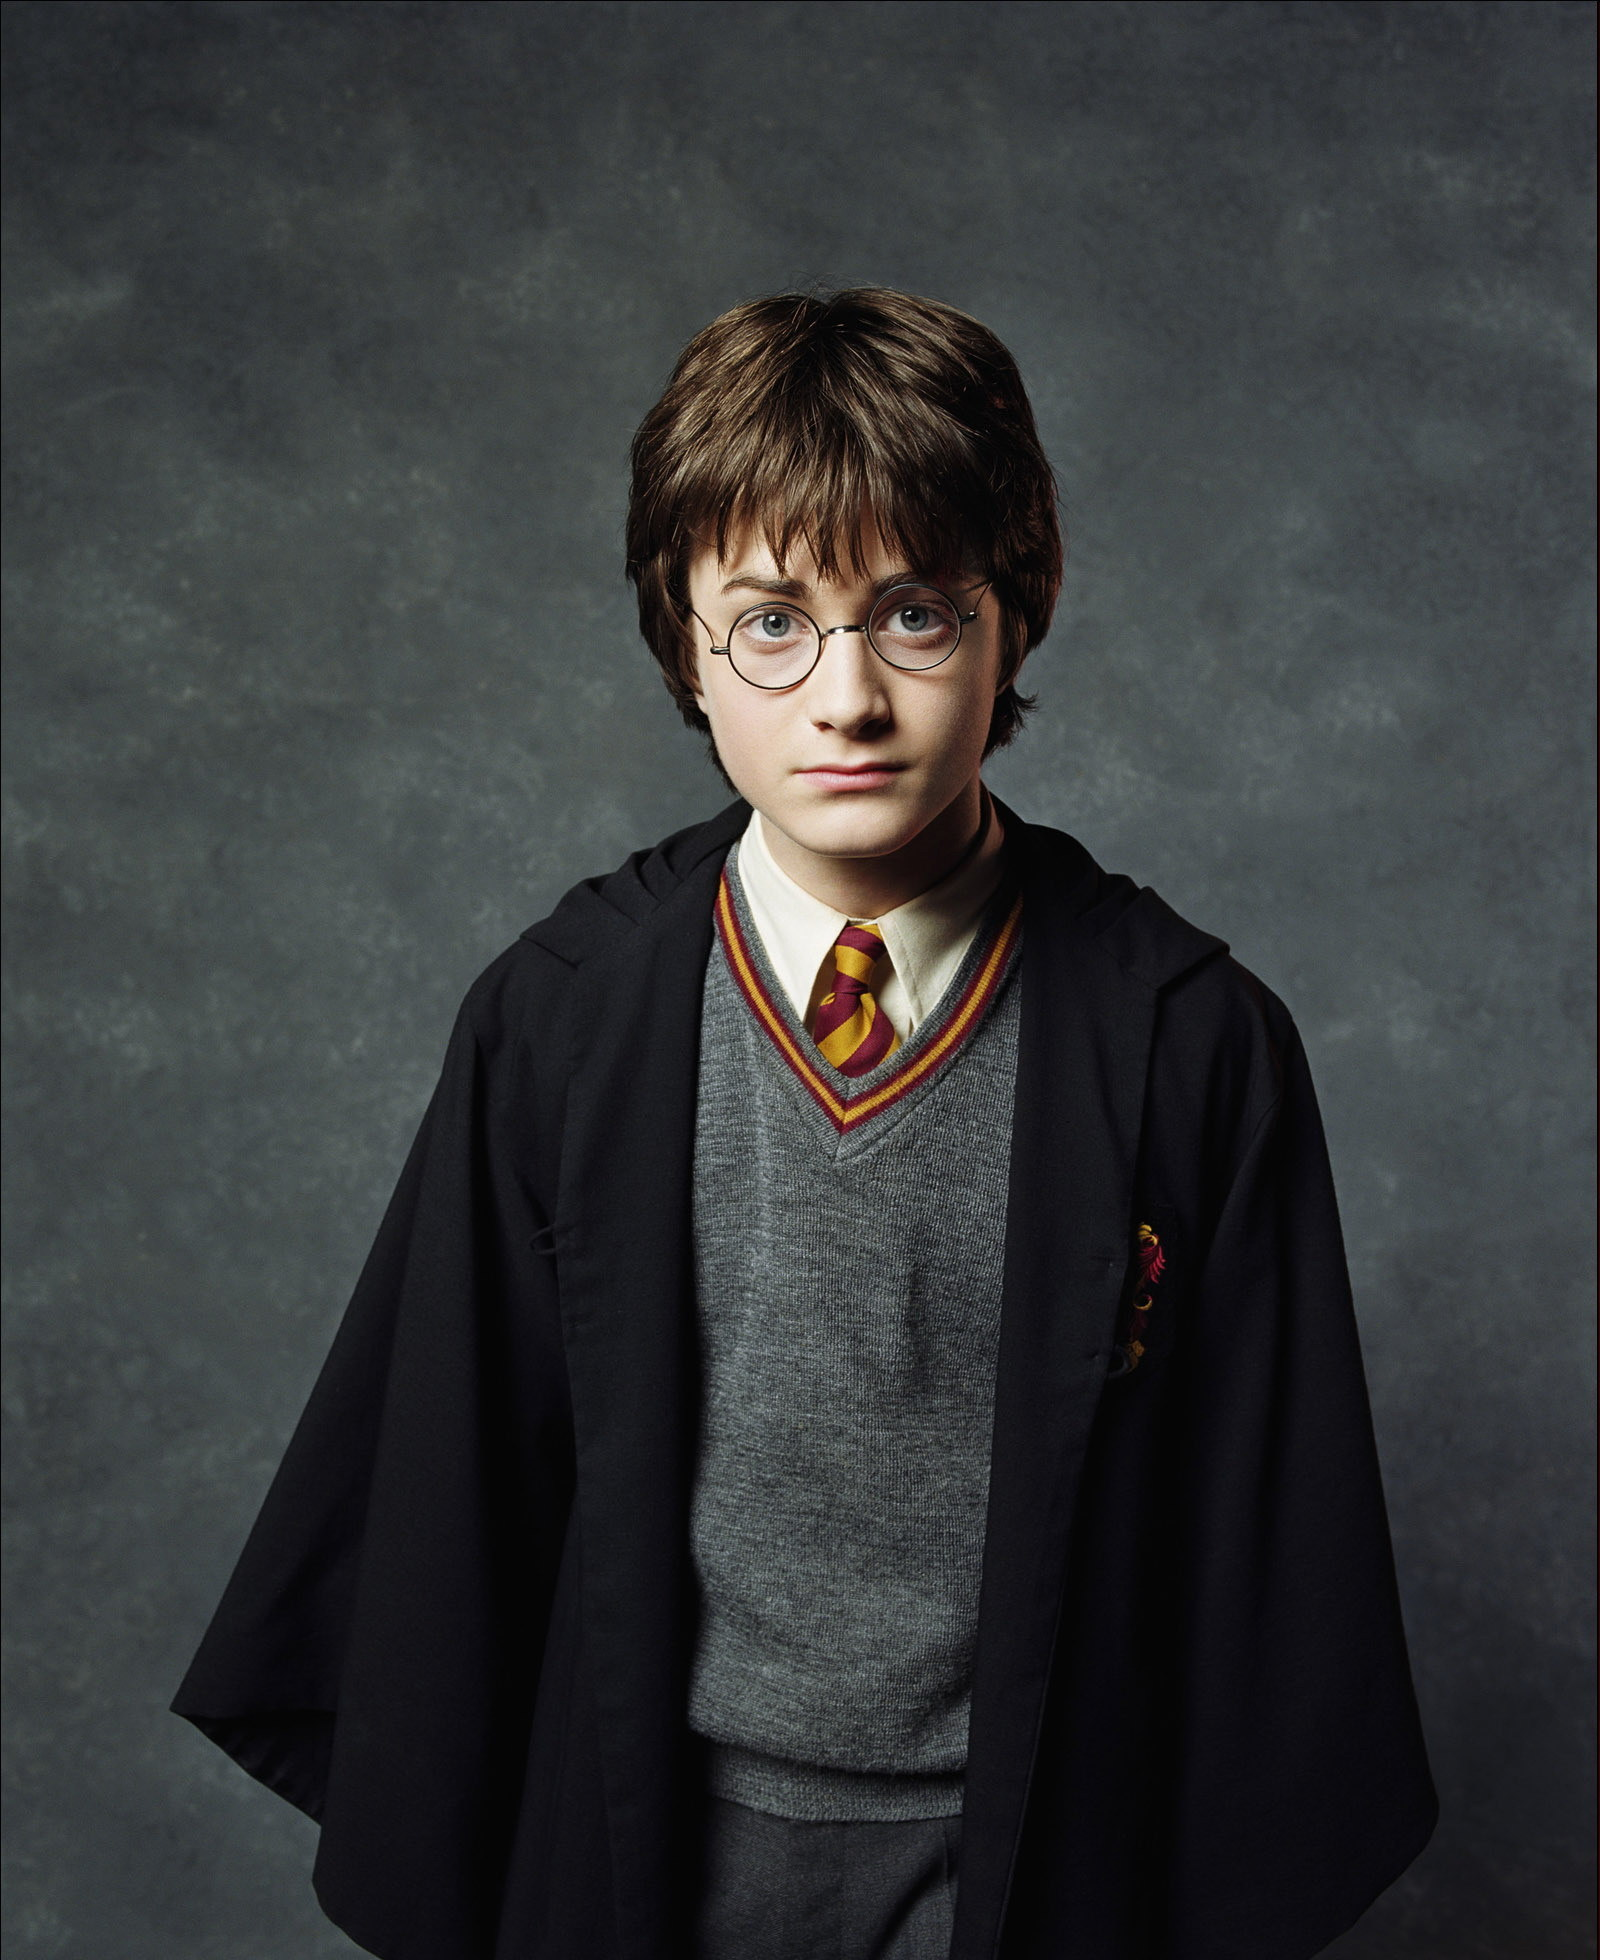 Harry James Potter Images 2001. Harry Potter And The